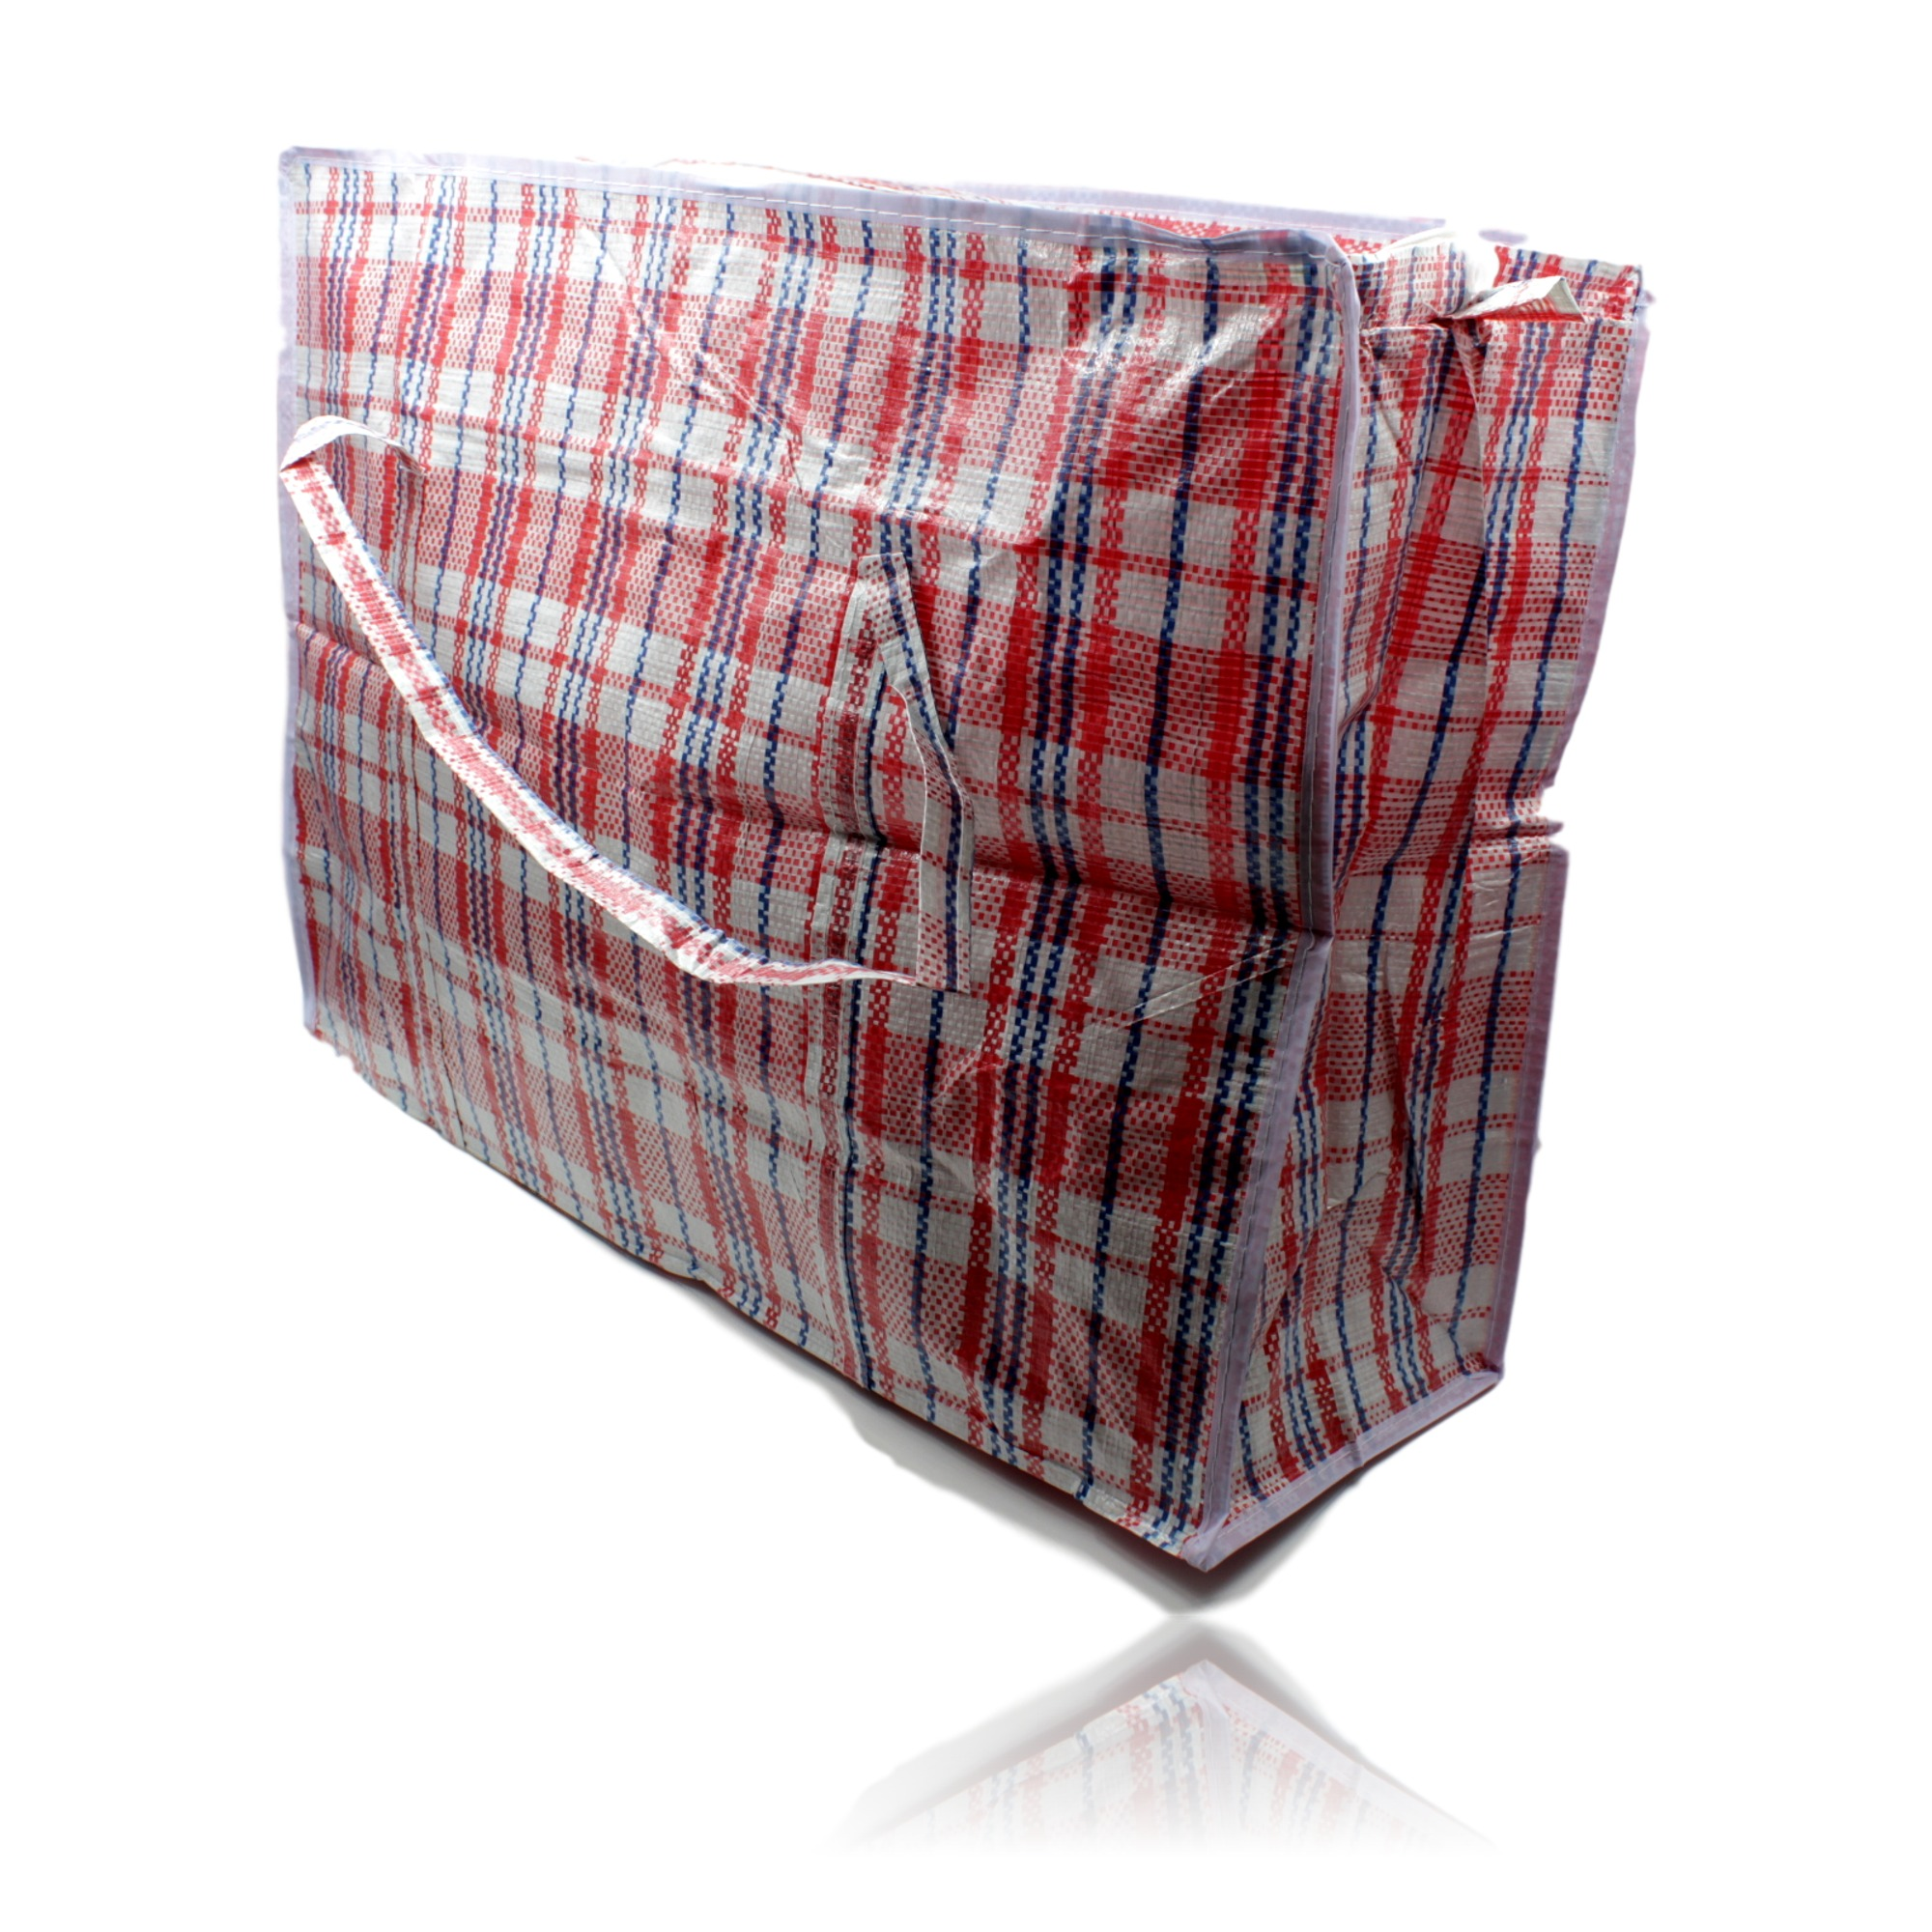 Carry Laundry Bag Re Usable Woven Plastic Shopping Storage Laundry Carry Bag